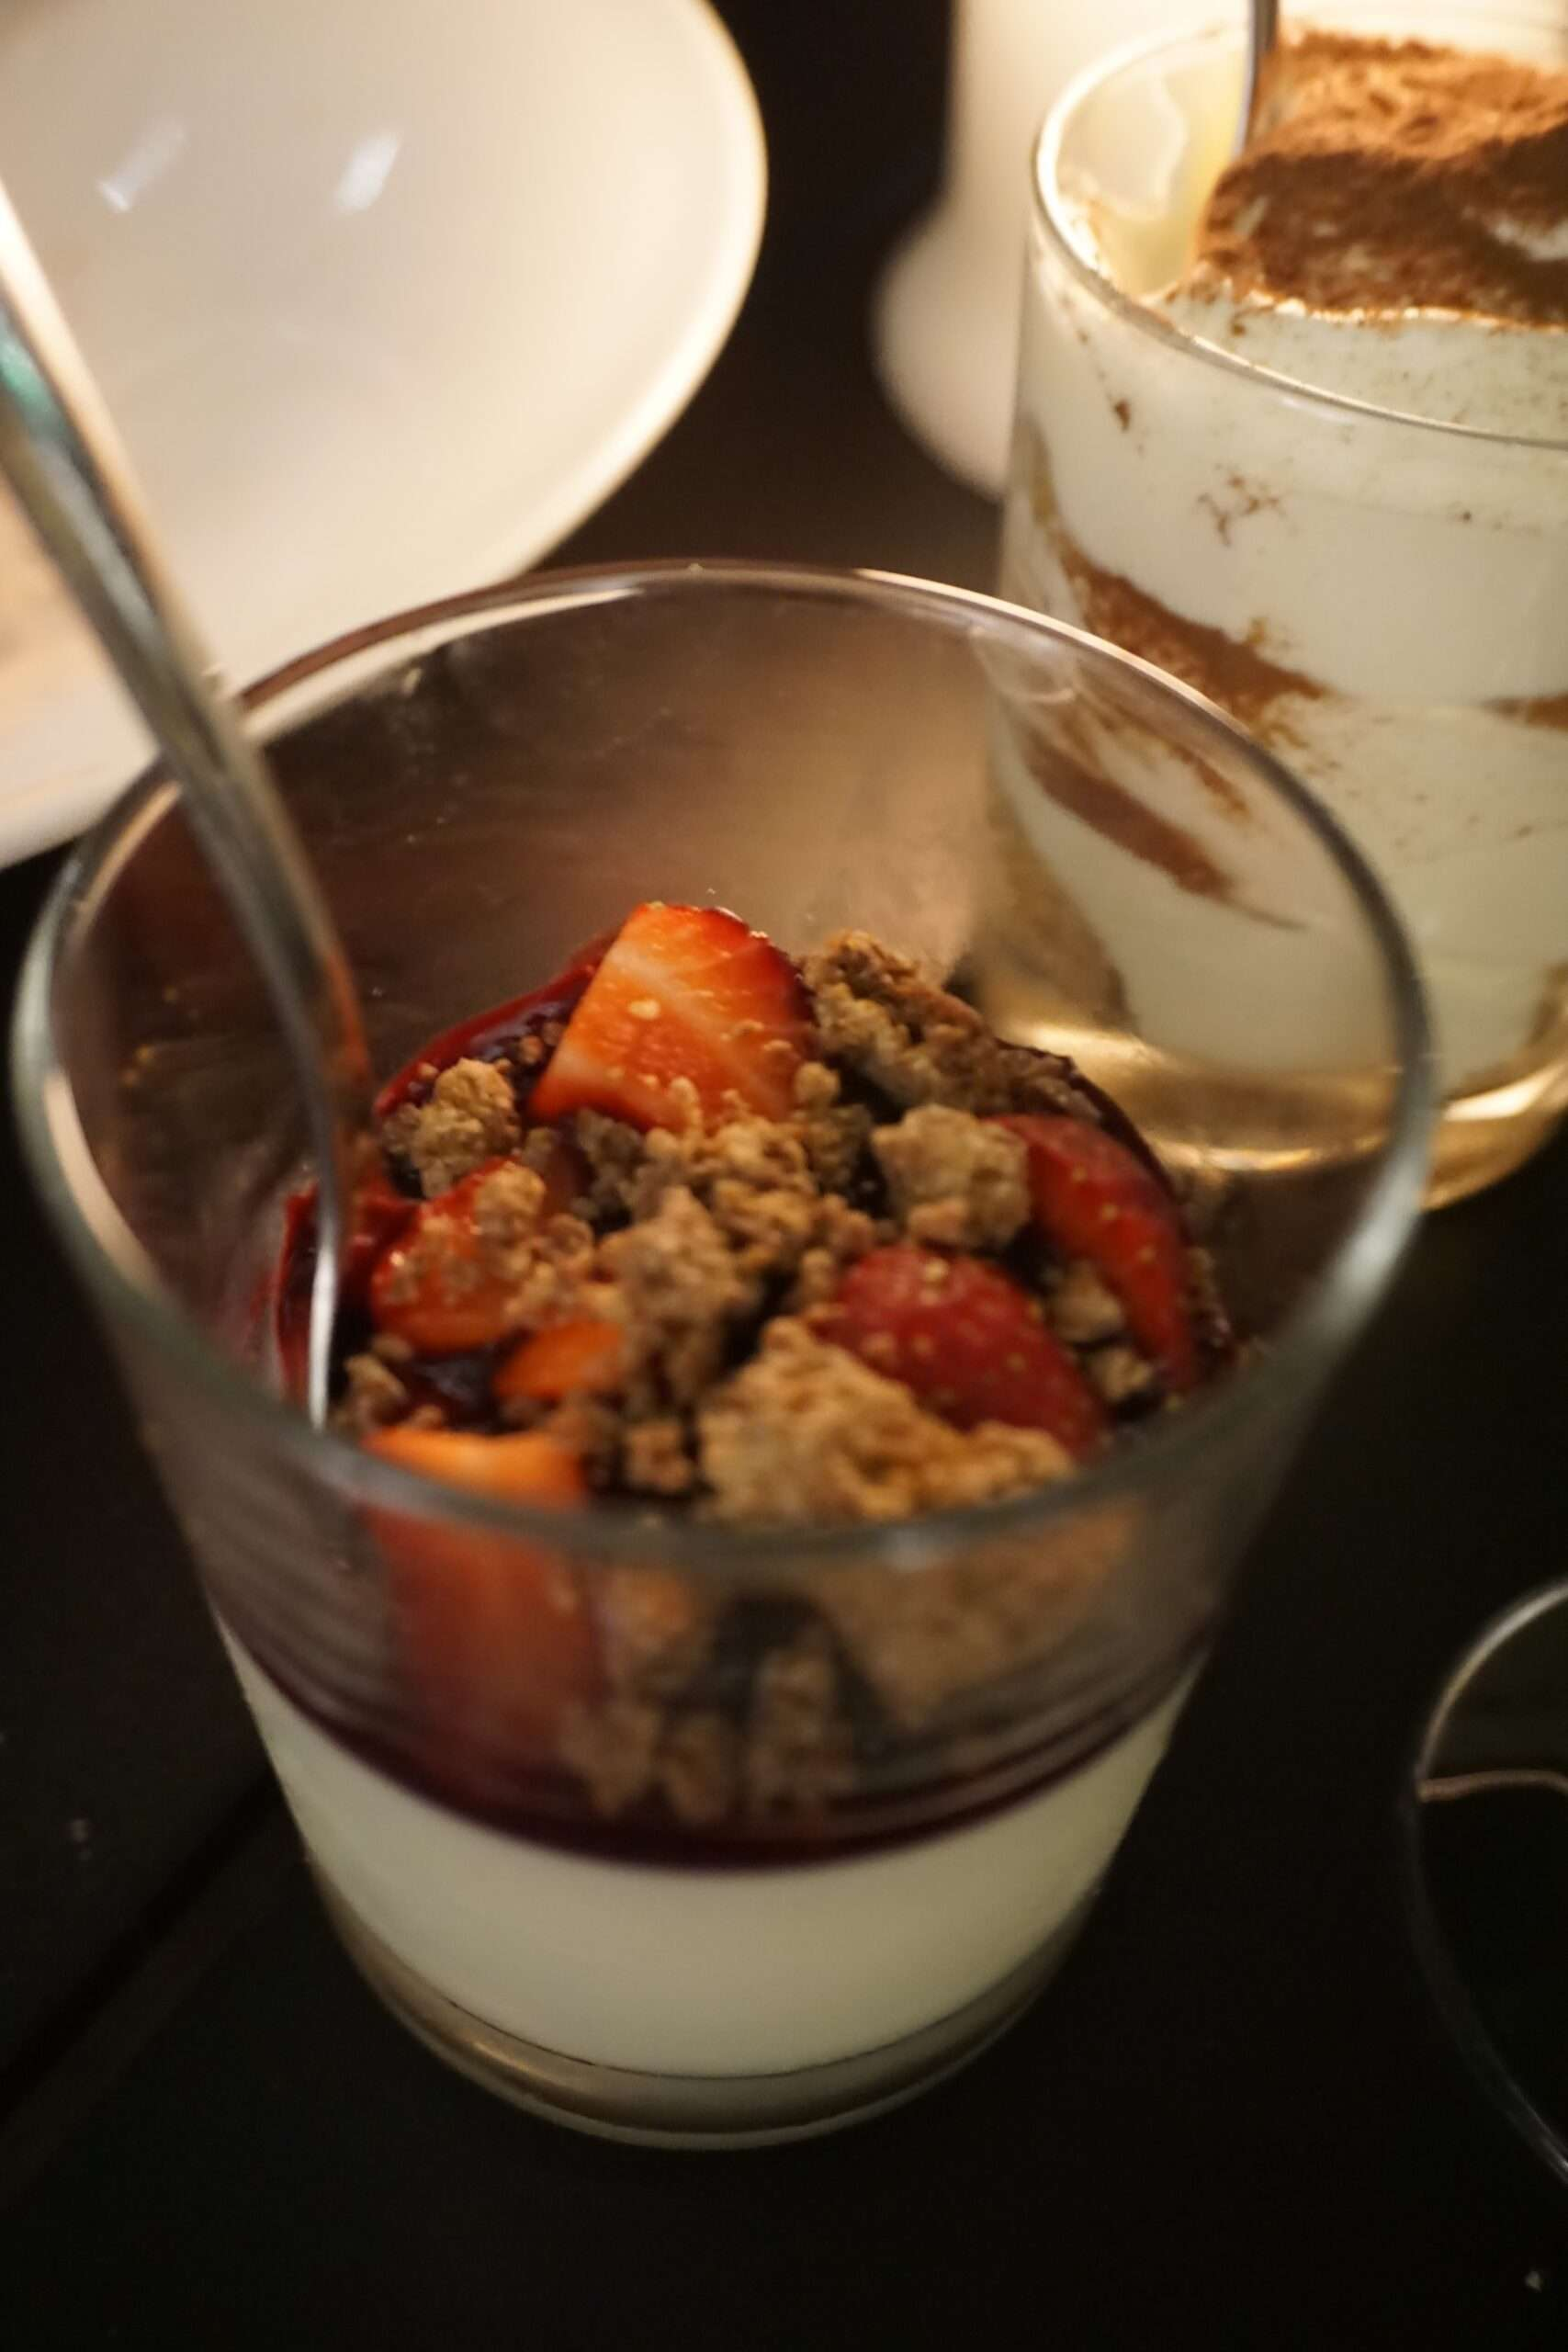 glass pot with dessert containing chocolate sauce, chopped strawberries and brown crumble at Kazerne restaurant